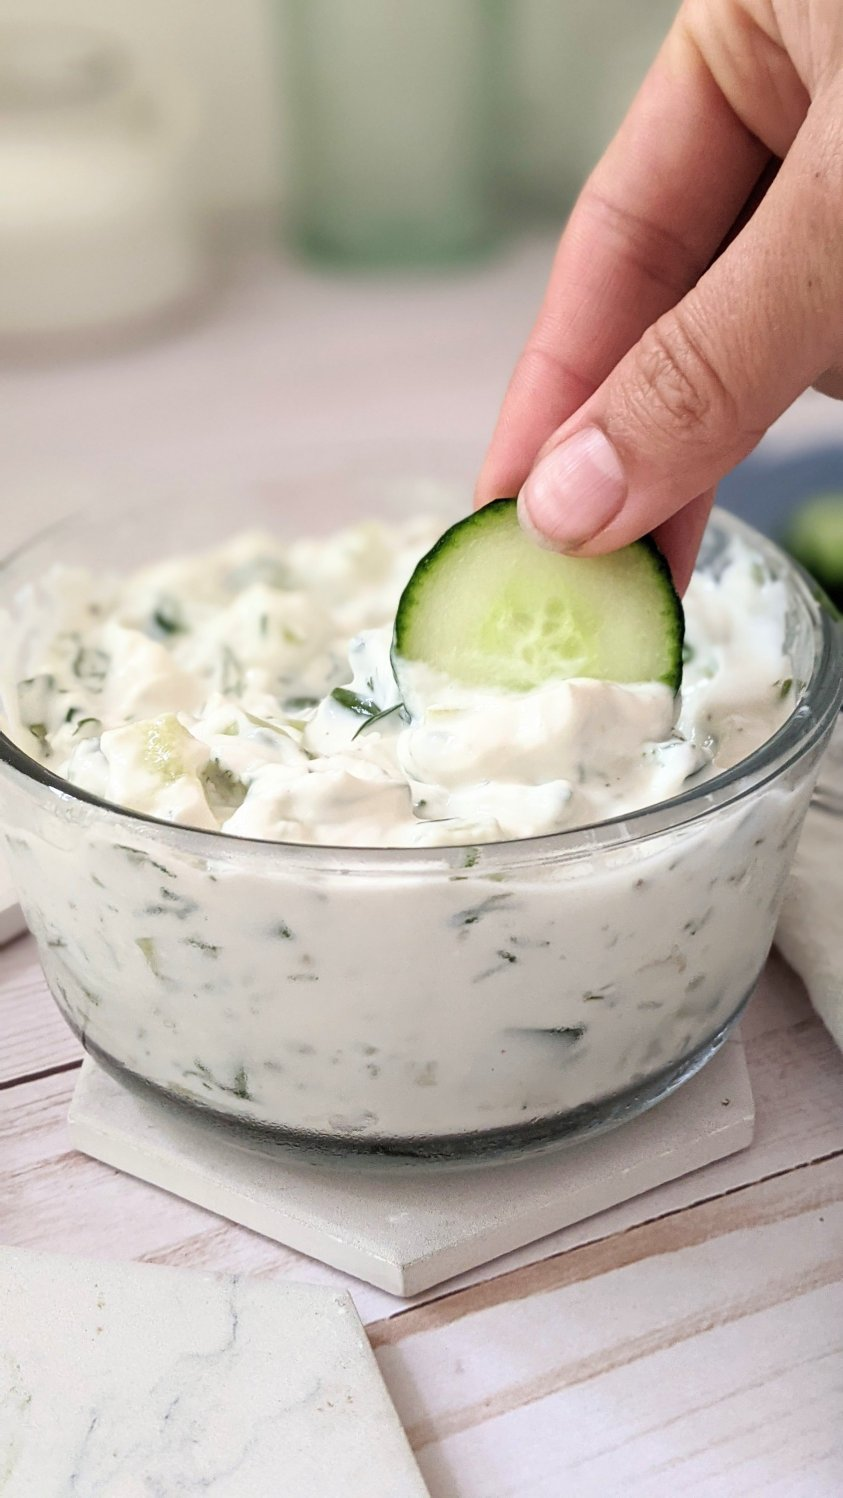 keto tzatziki sauce recipe healthy low carb dip recipes with cucumber yogurt low carb spread for shawarma pitas or grilled meats keto greek dip recipes